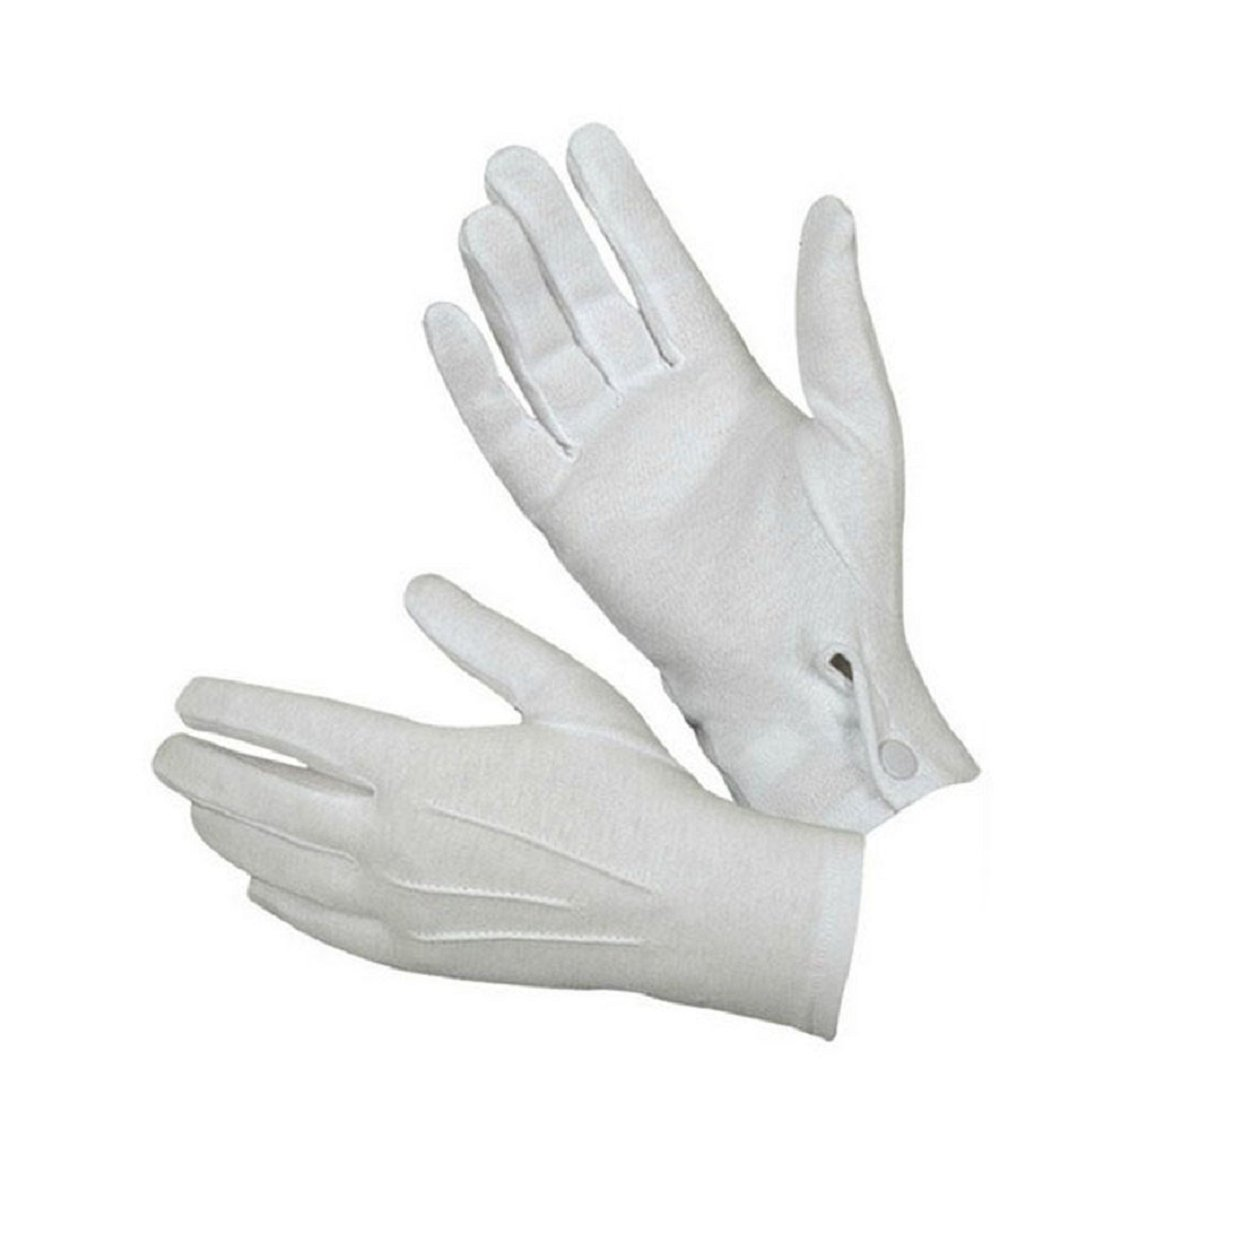 Lowpricenice 1Pair White Formal Gloves Tuxedo Honor Guard Parade Santa Men Inspection